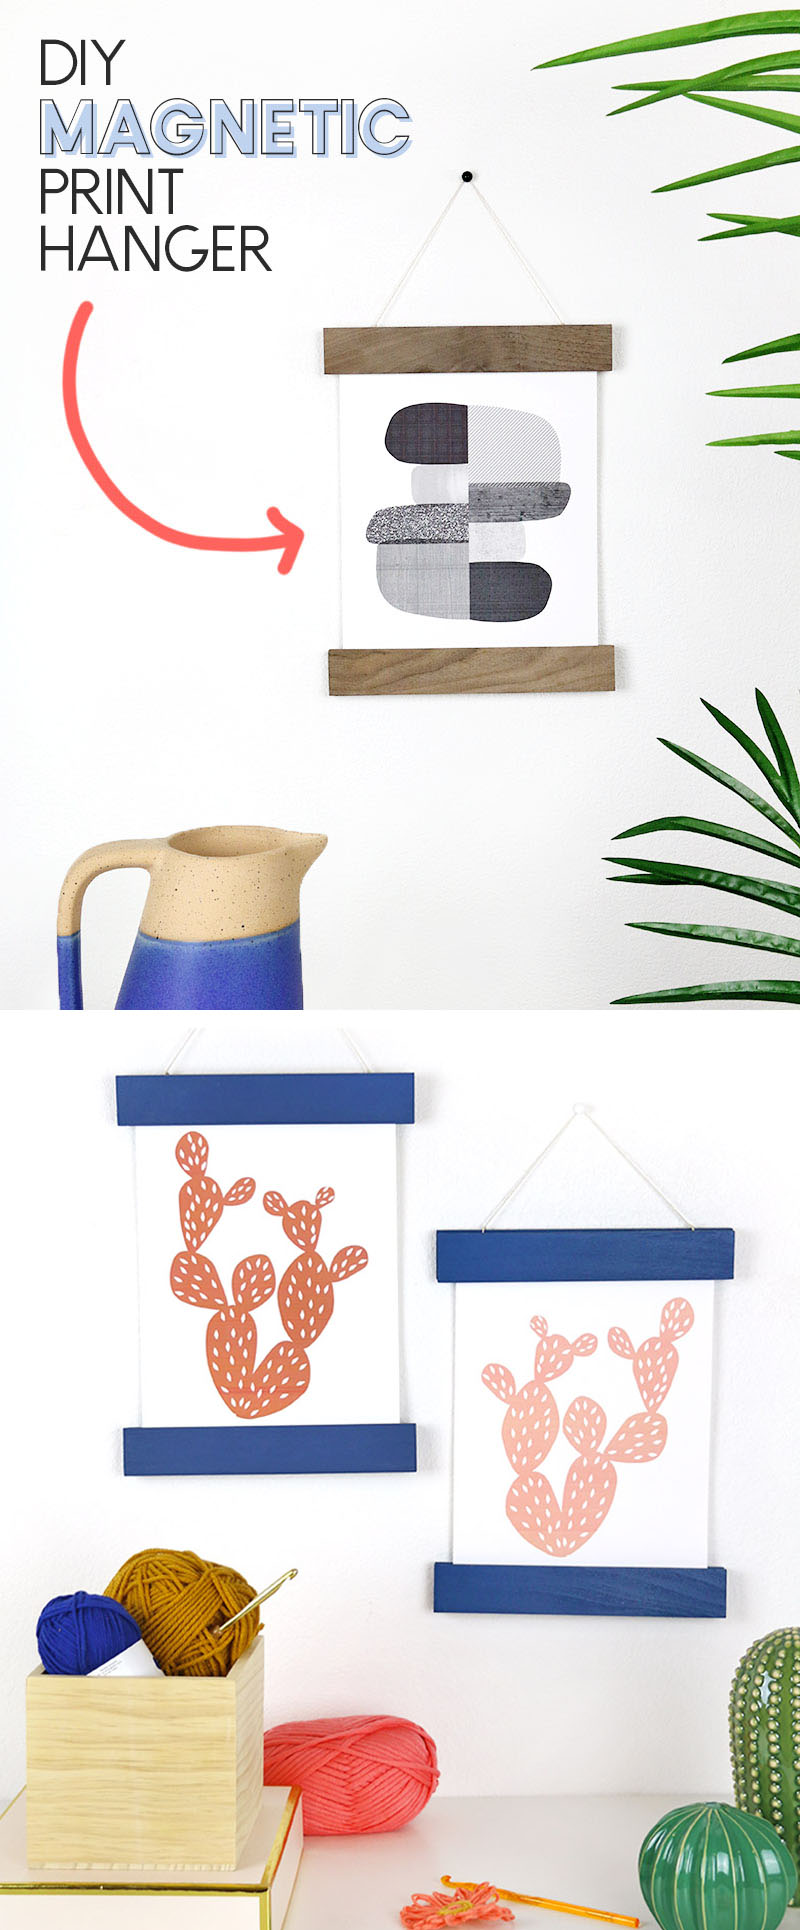 diy magnetic print hanger - so easy to change out art